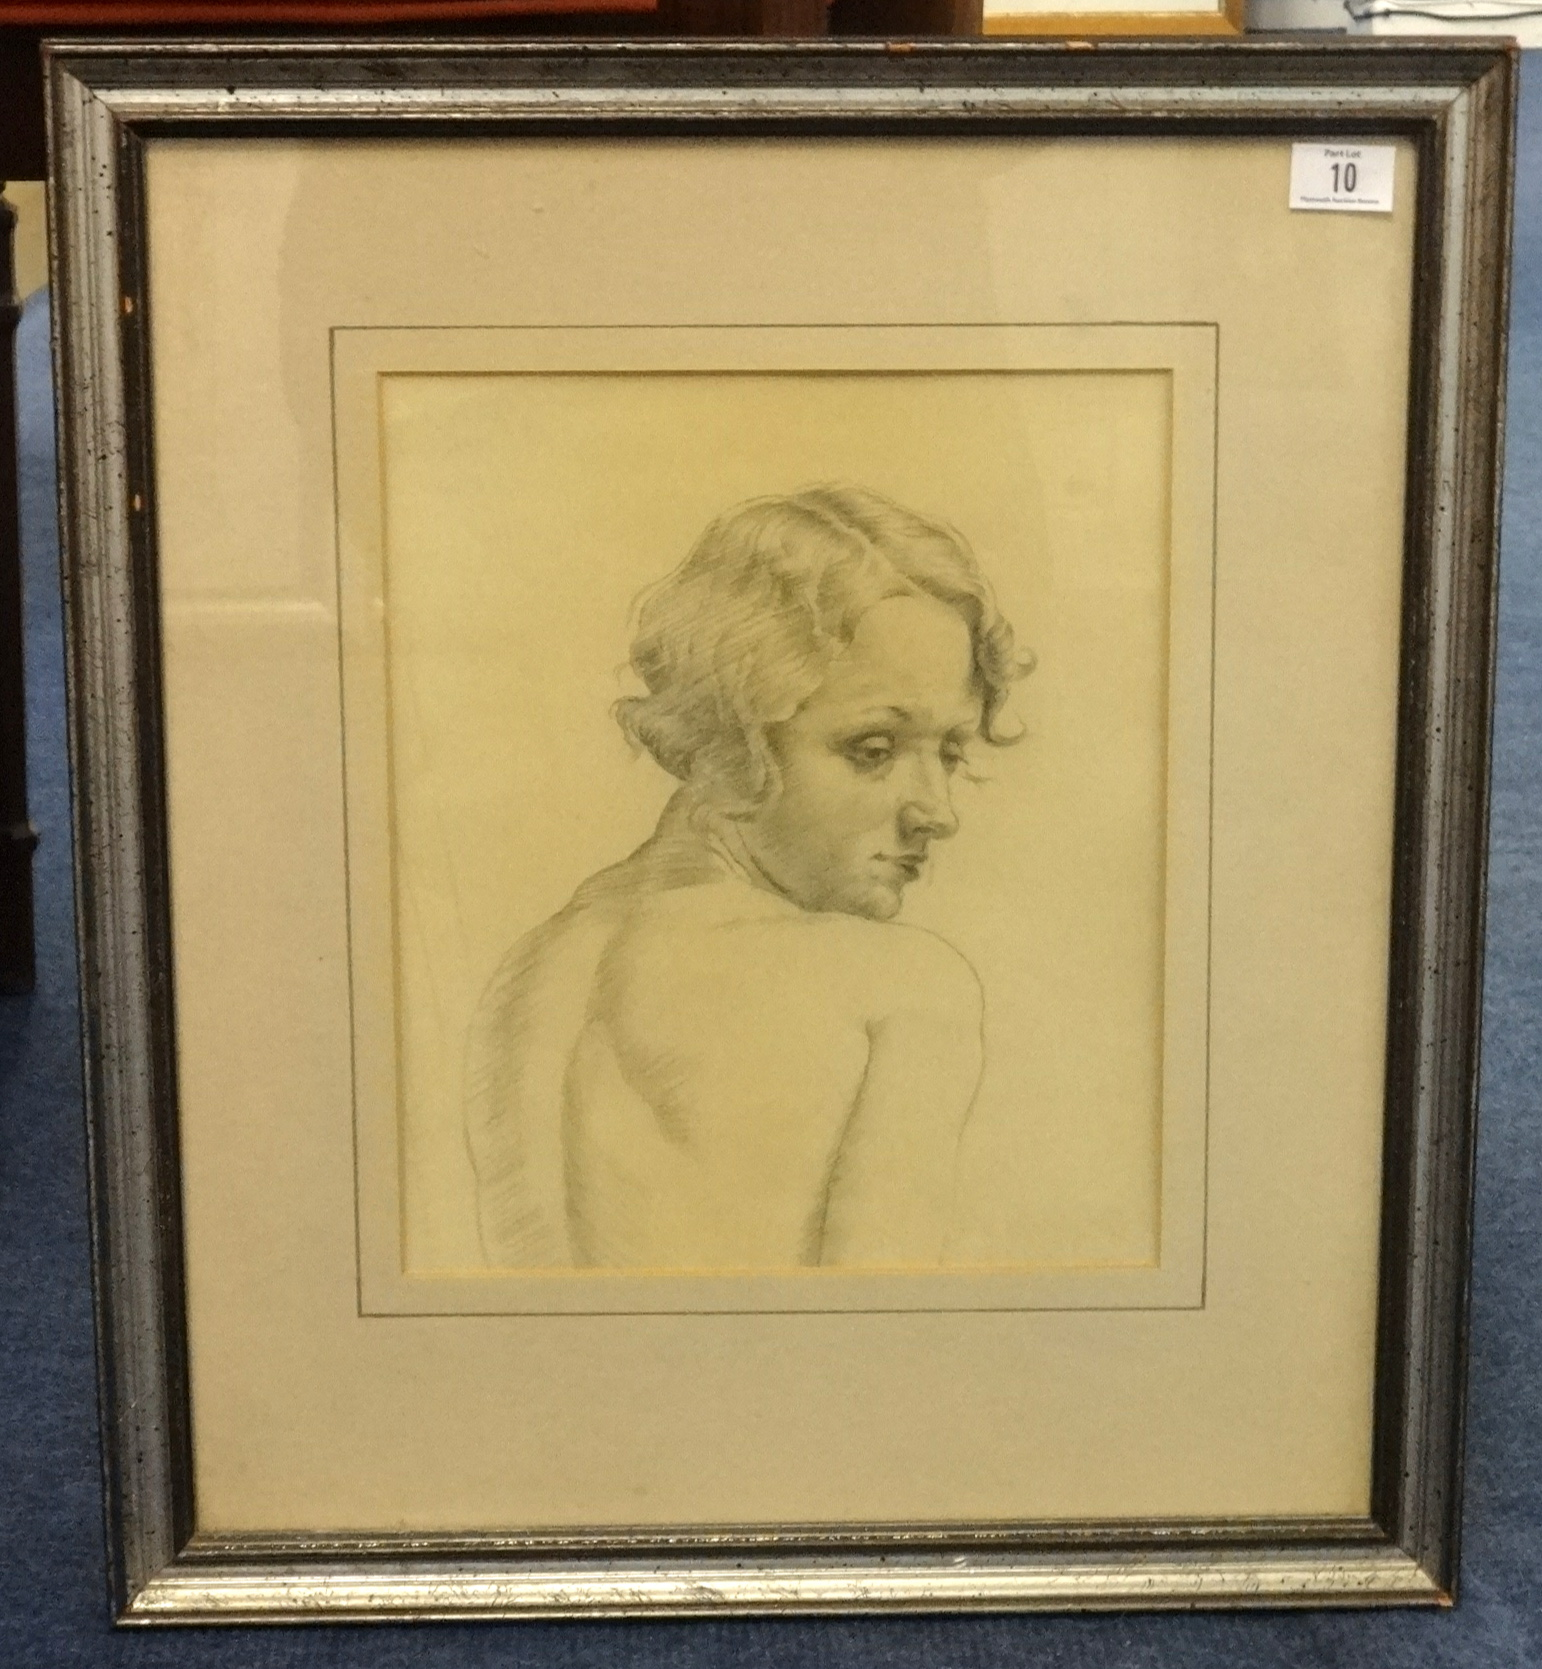 Lot 010 - Frank Potter, RA Sepia bust sketch of lady 24cm x 20cm, also charcoal pencil sepia head and bust